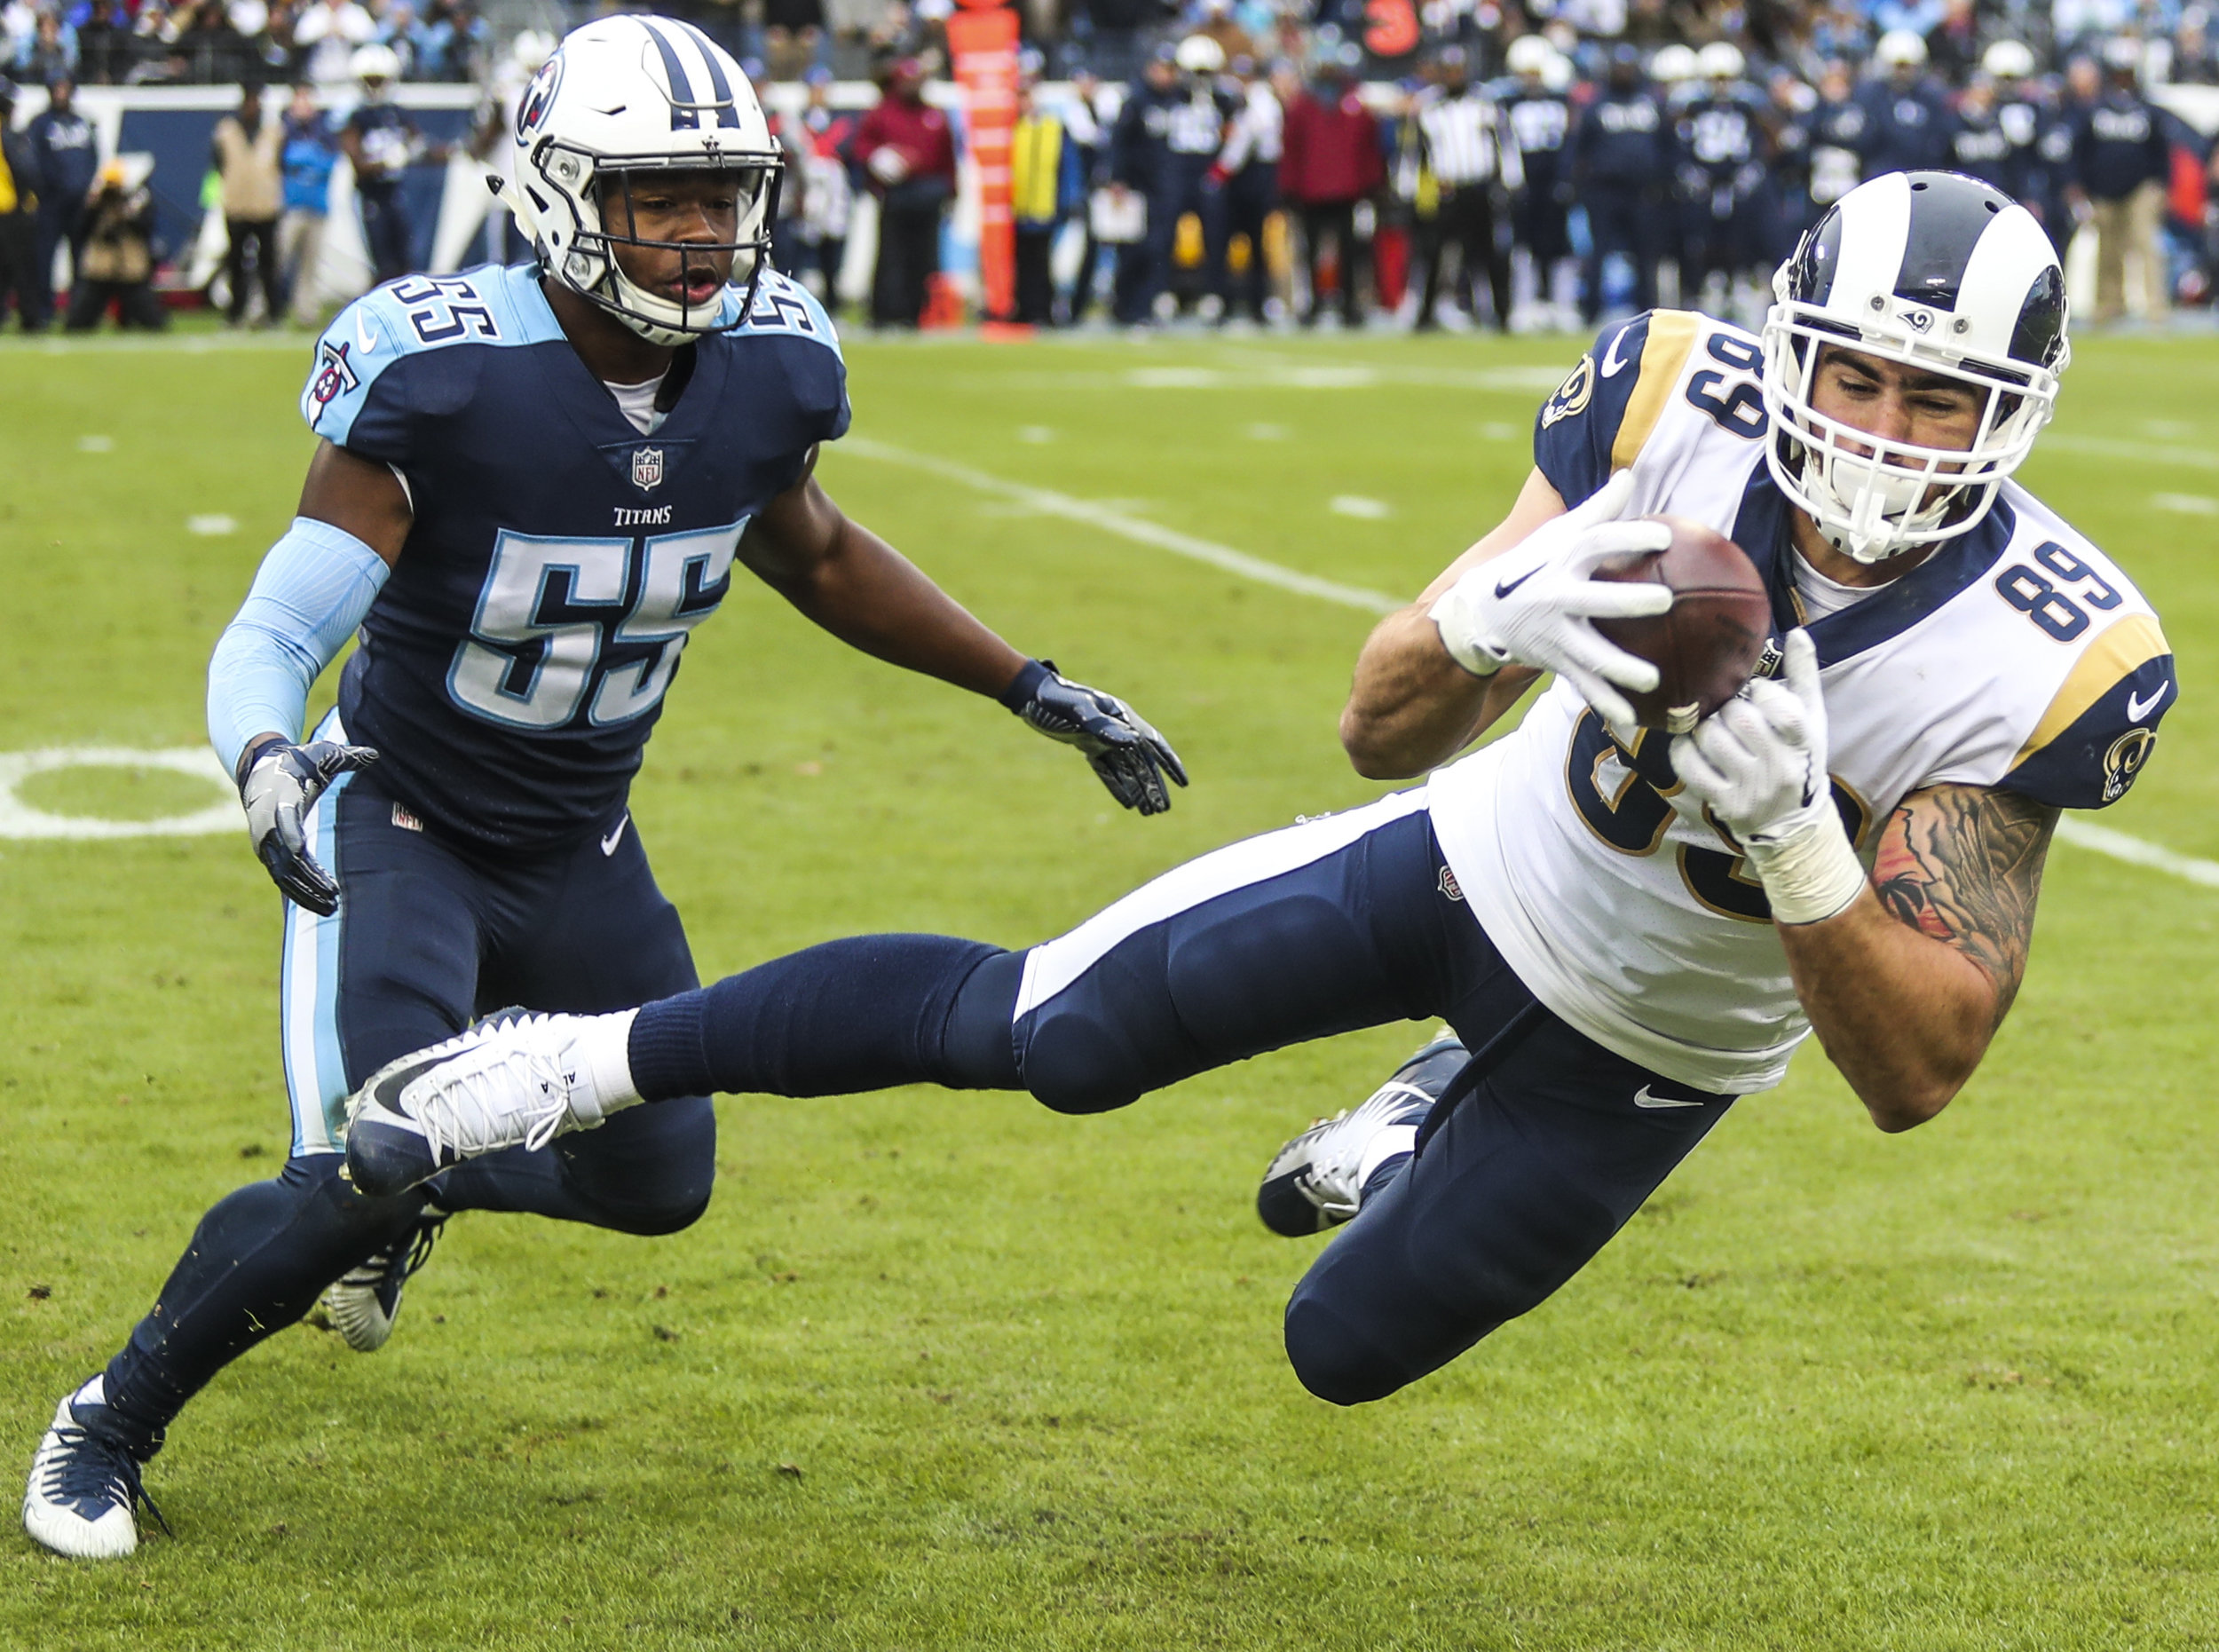 Los Angeles Rams tight end Tyler Higbee makes a diving catch Sunday while covered by Tennessee Titans linebacker Jayon Brown during the Rams' 27-23 win at Nissan Stadium in Nashville.